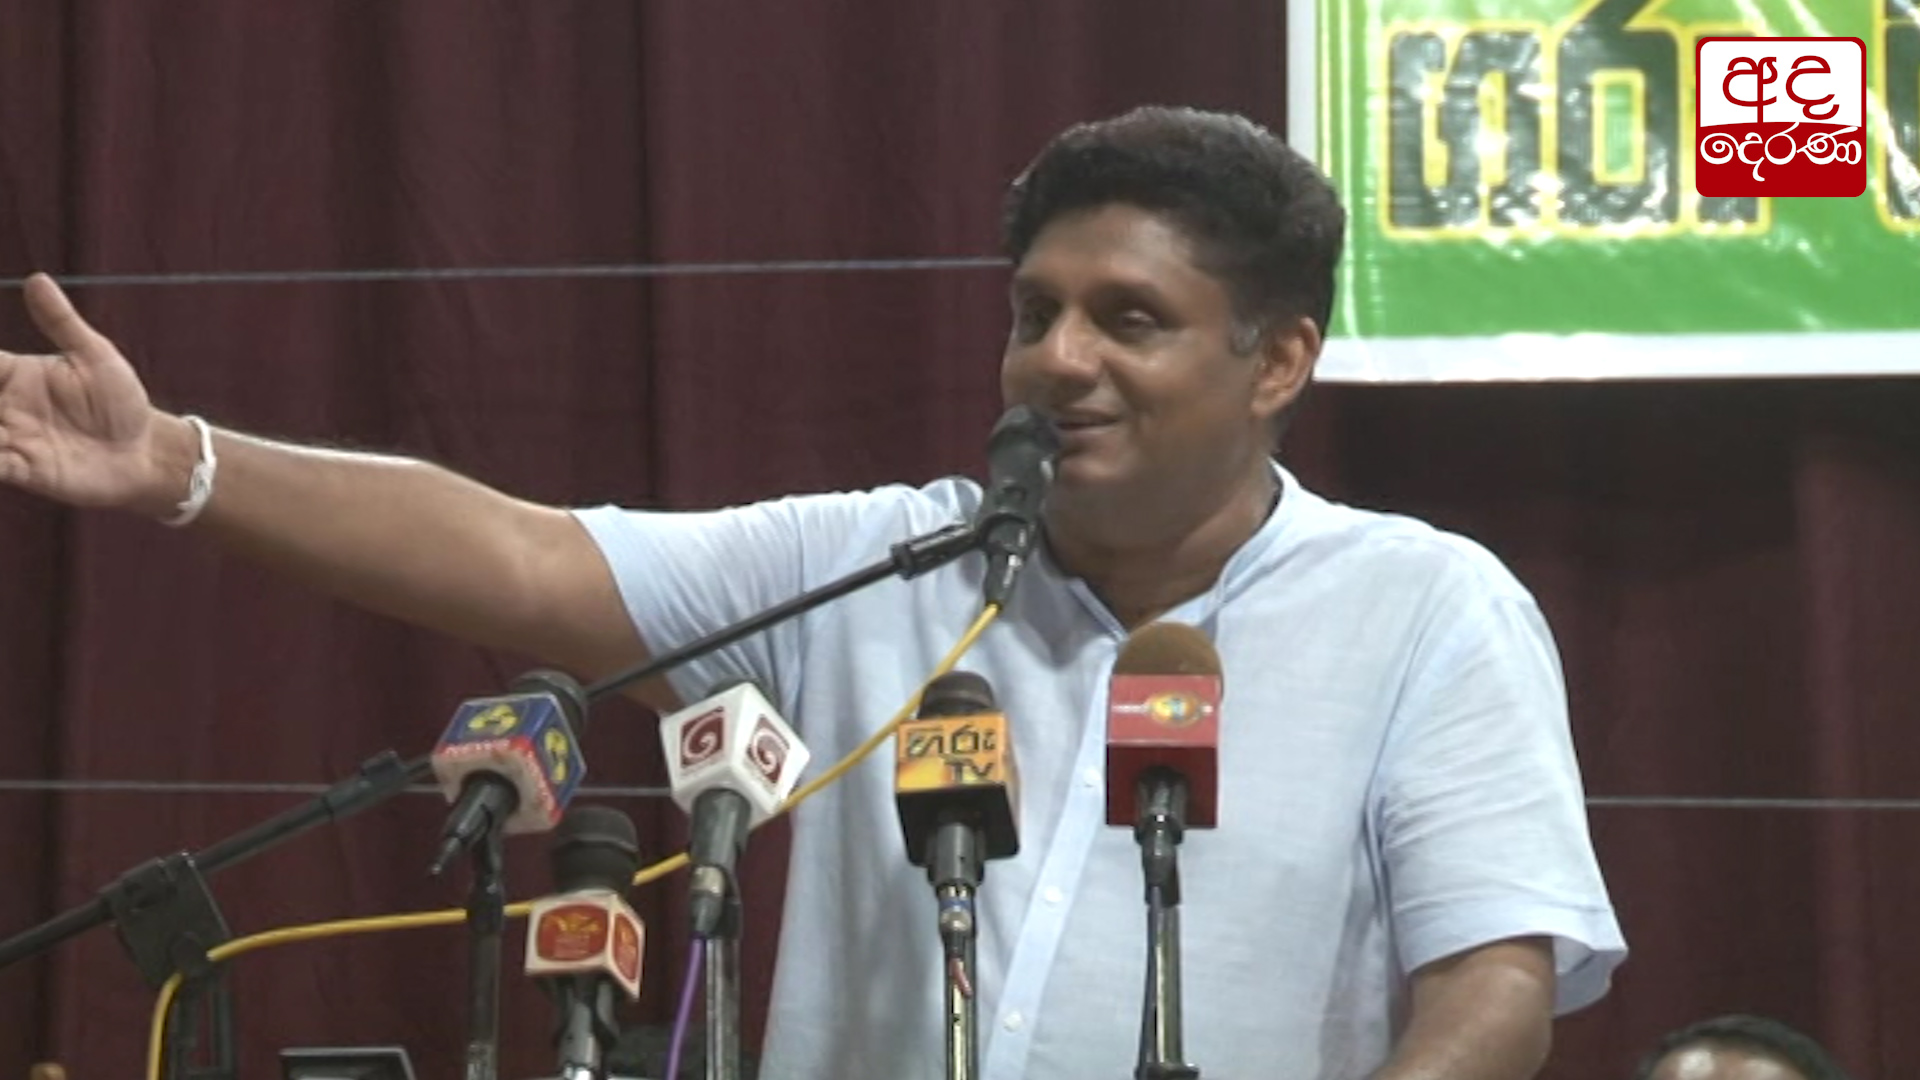 There's no one who received the 4% debt relief - Sajith